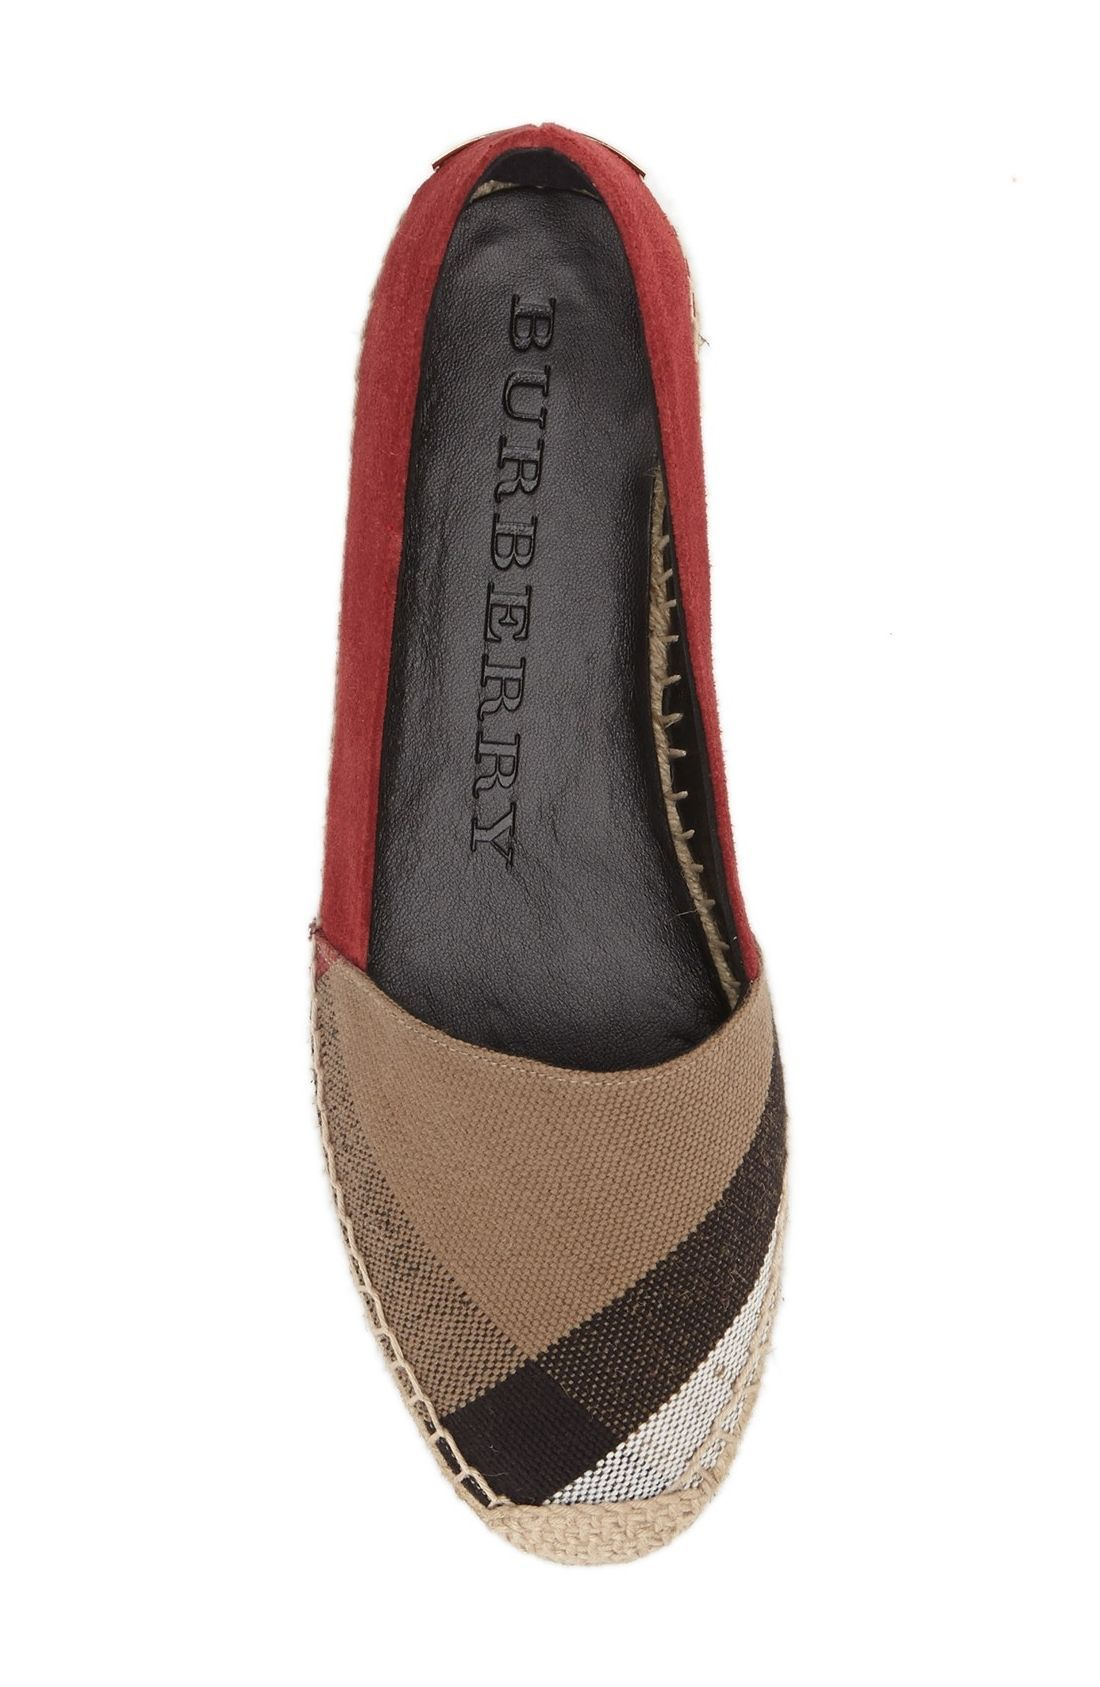 c9656c1fd175 Absolutely adoring these Burberry espadrilles with the infamous check  pattern.